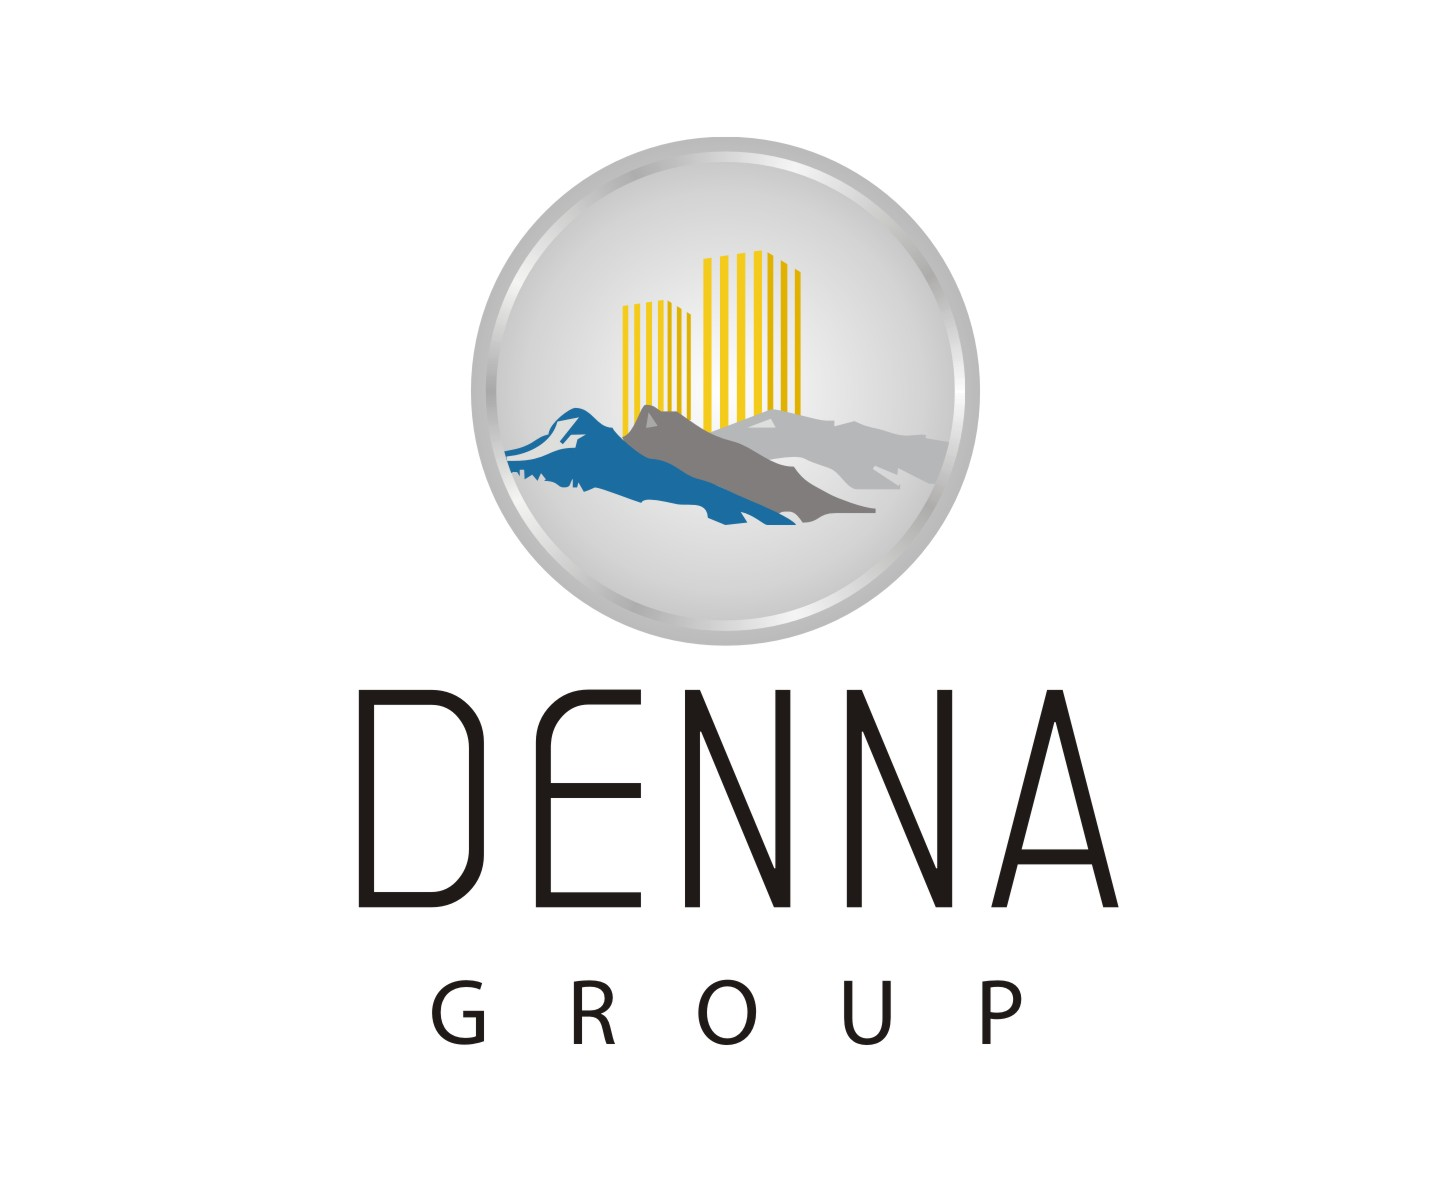 Logo Design by Mahida Kirit Chandrasinh - Entry No. 116 in the Logo Design Contest Denna Group Logo Design.